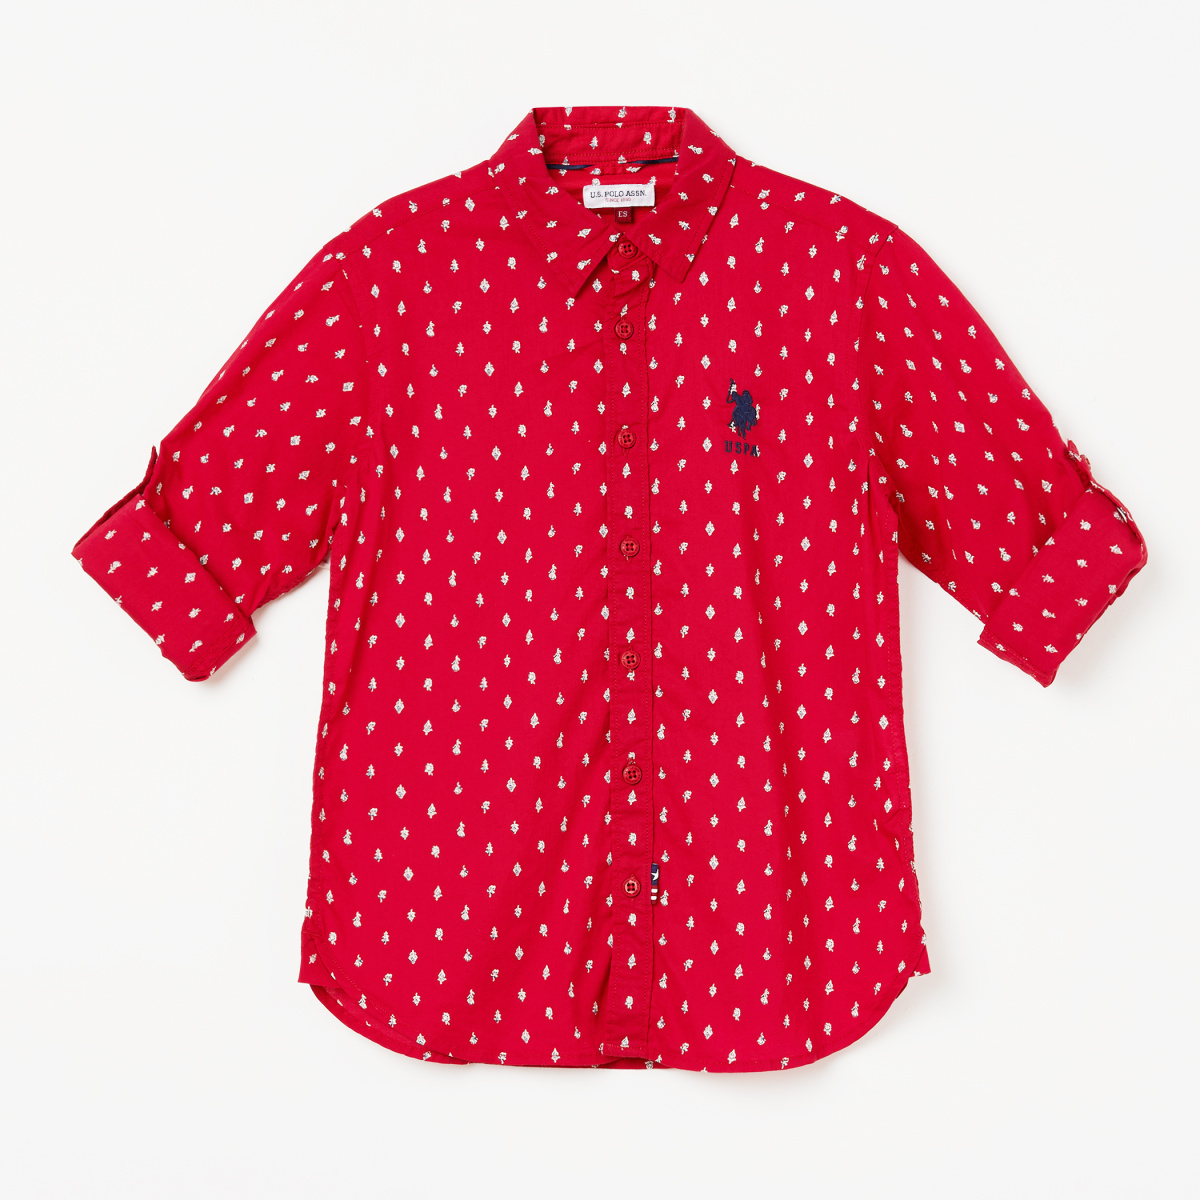 U.S. POLO ASSN. KIDS Printed Roll-up Sleeves Casual Shirt